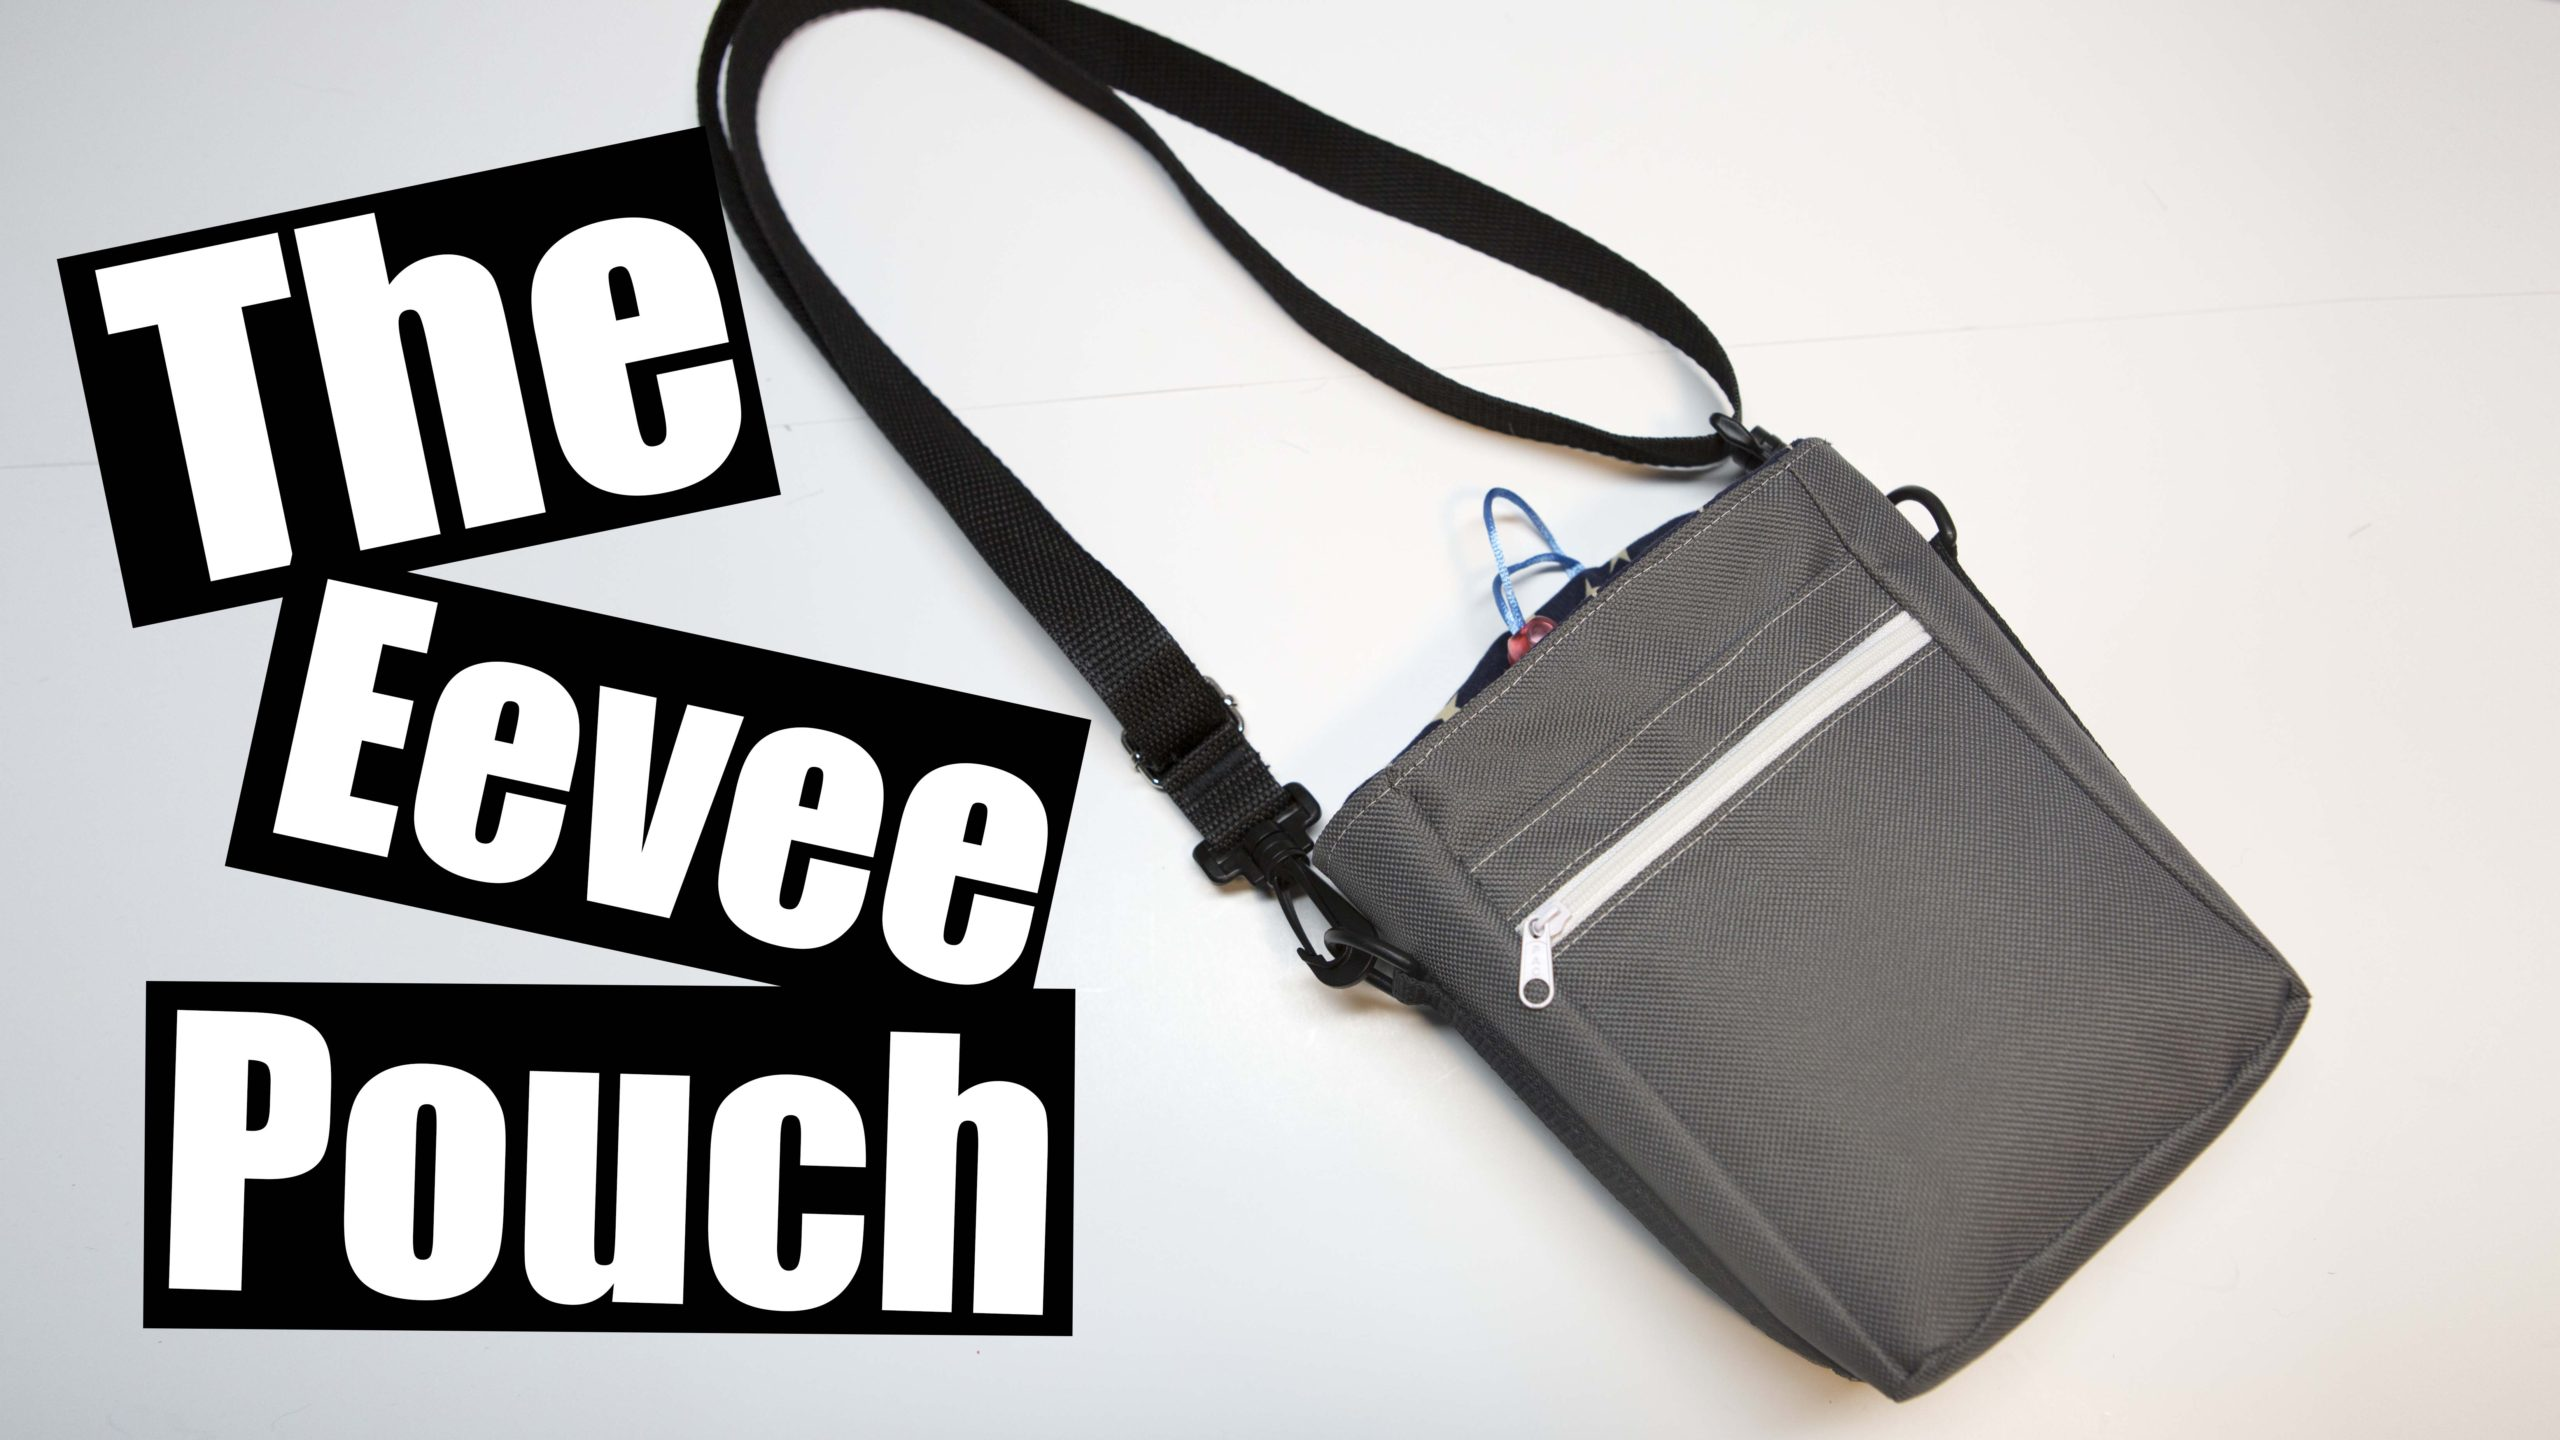 The Eevee pouch